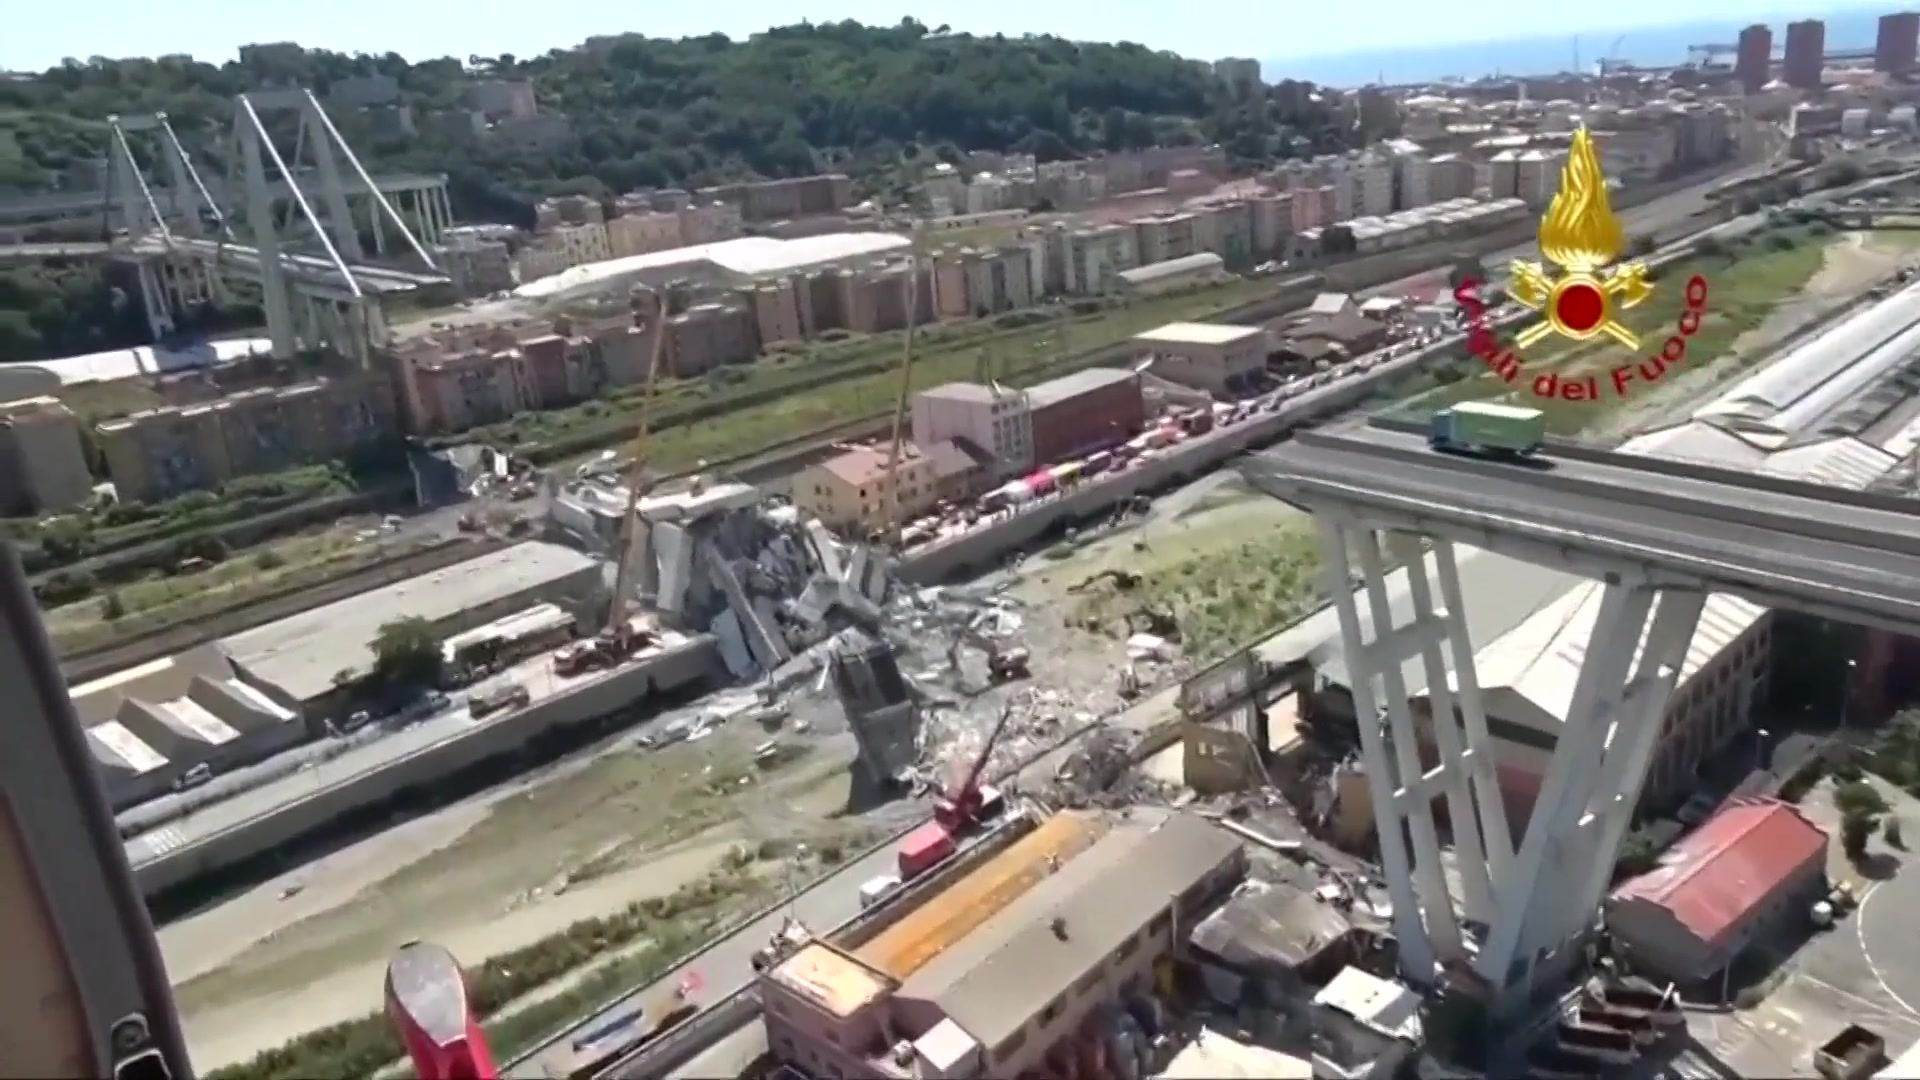 Search for survivors in Italy bridge disaster ends